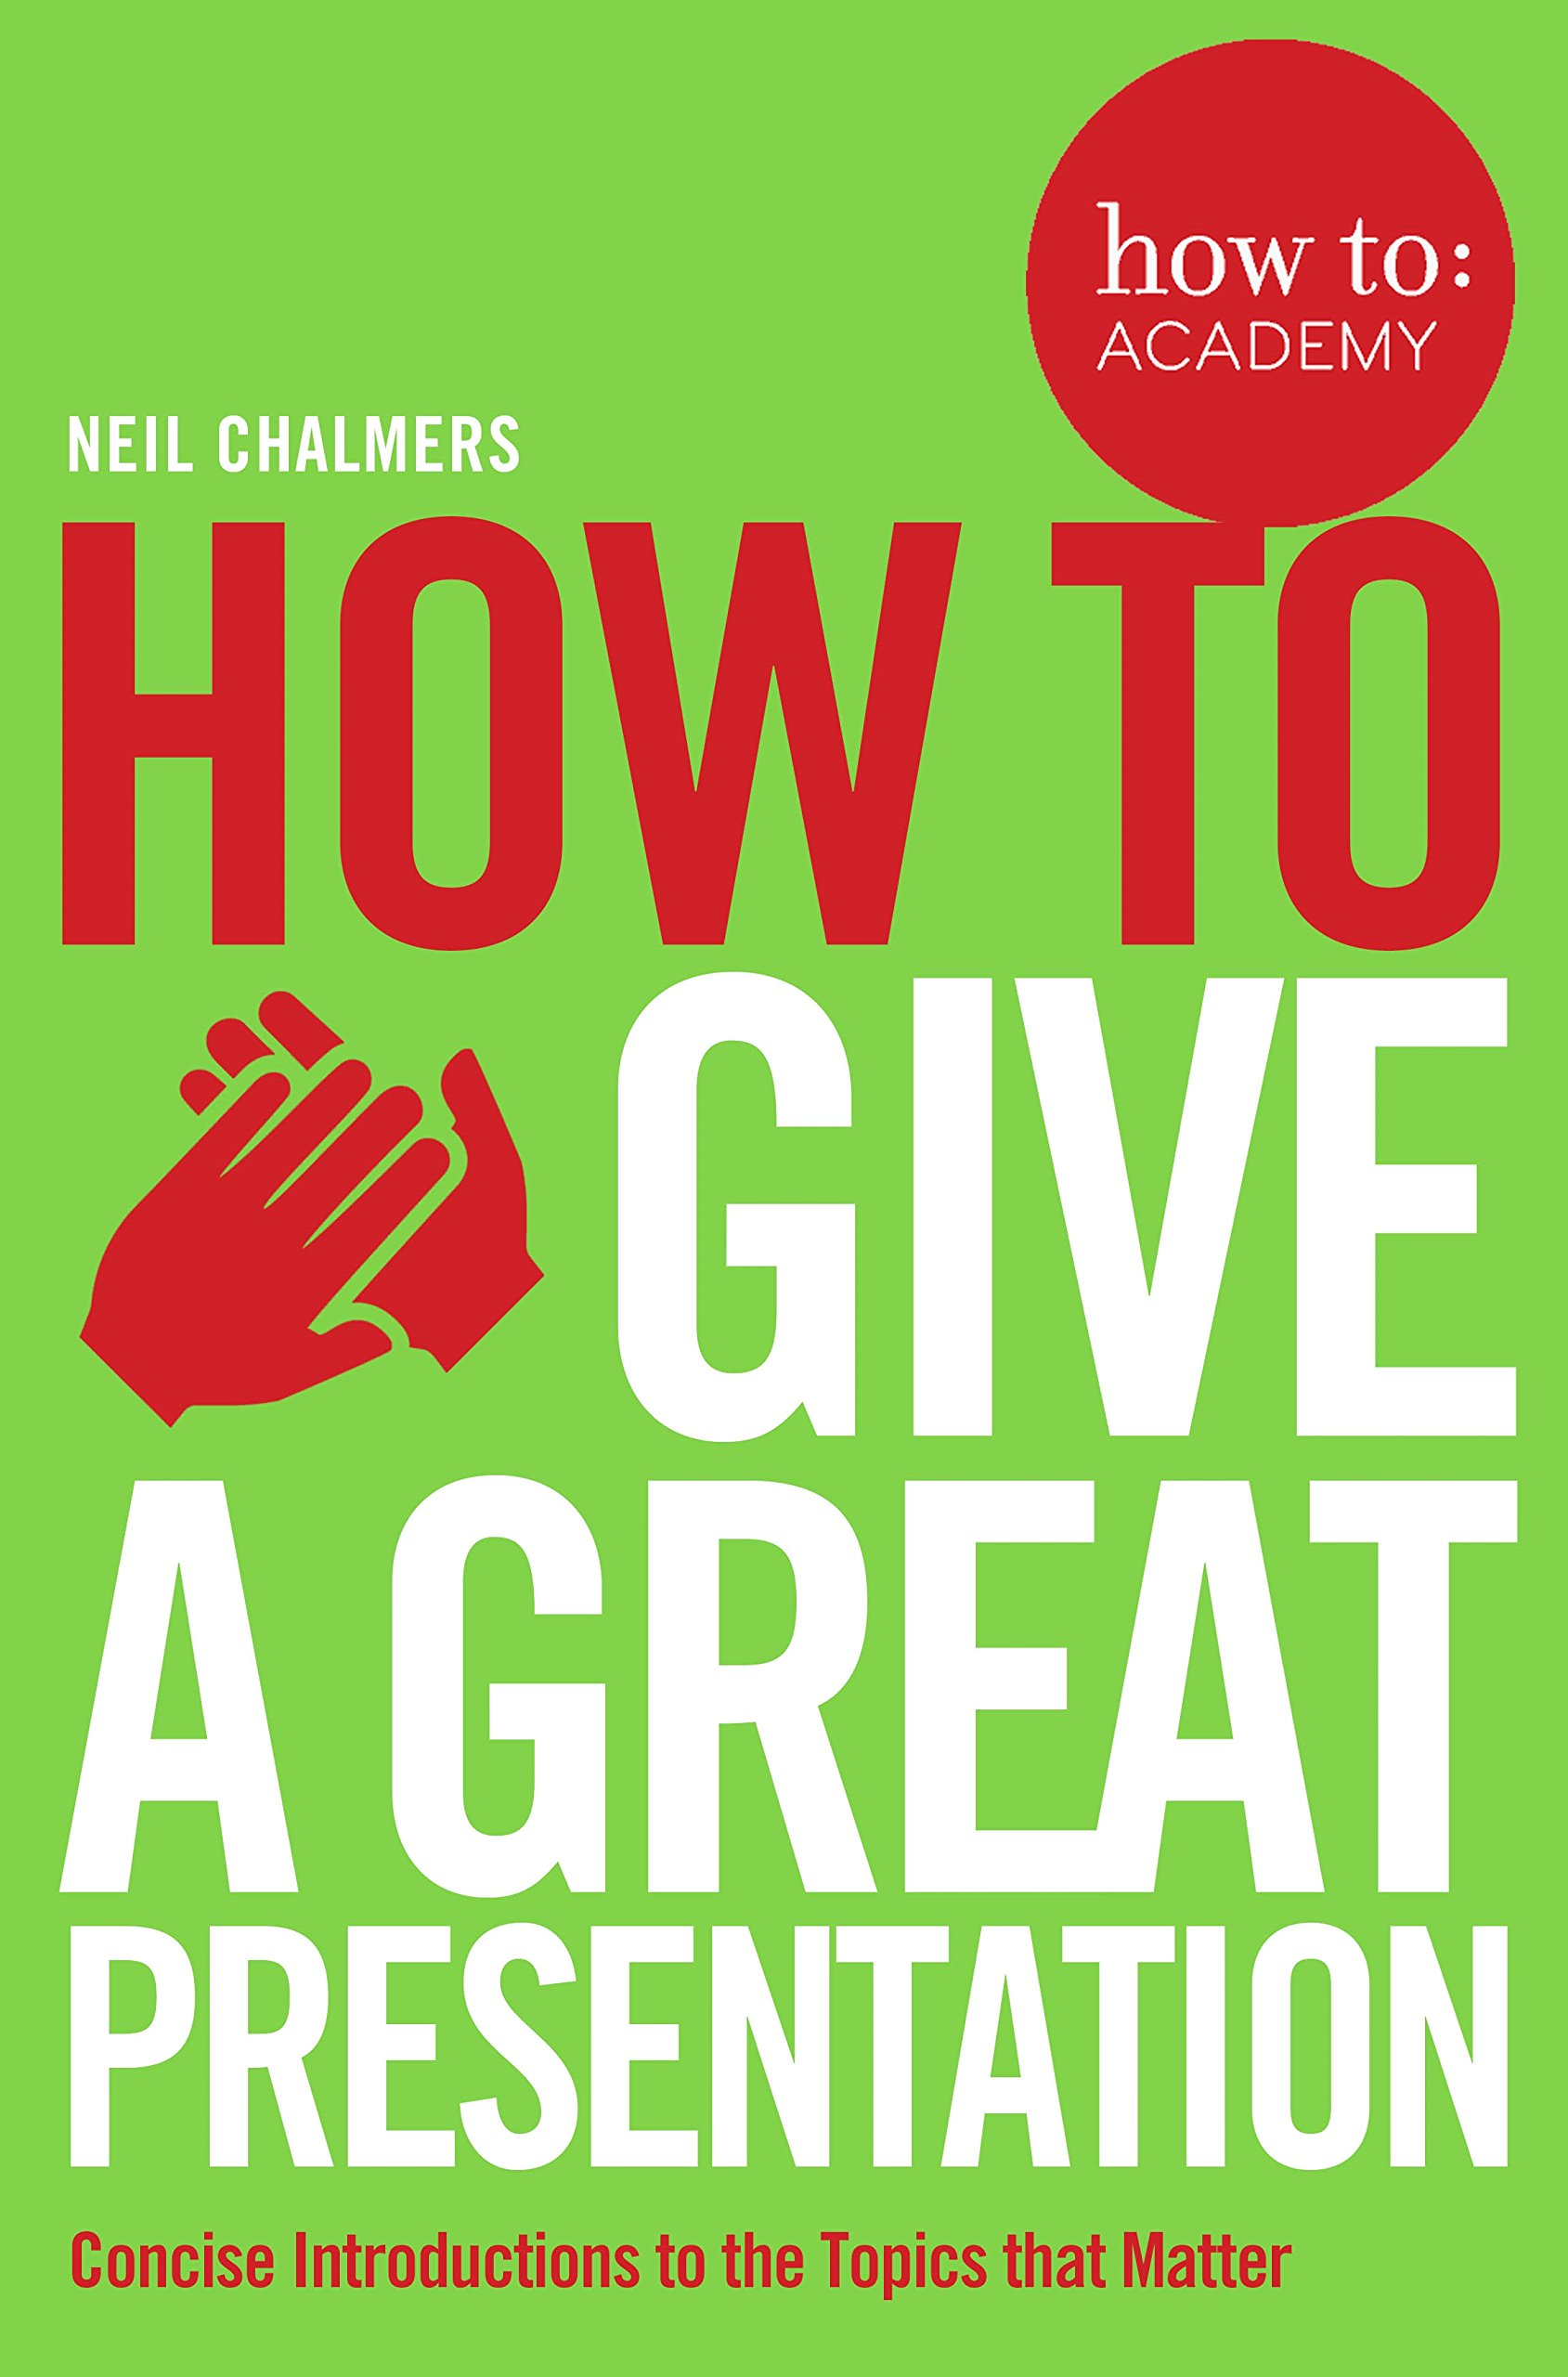 how to give a great presentation how to academy co uk how to give a great presentation how to academy co uk neil chalmers 9781509814473 books